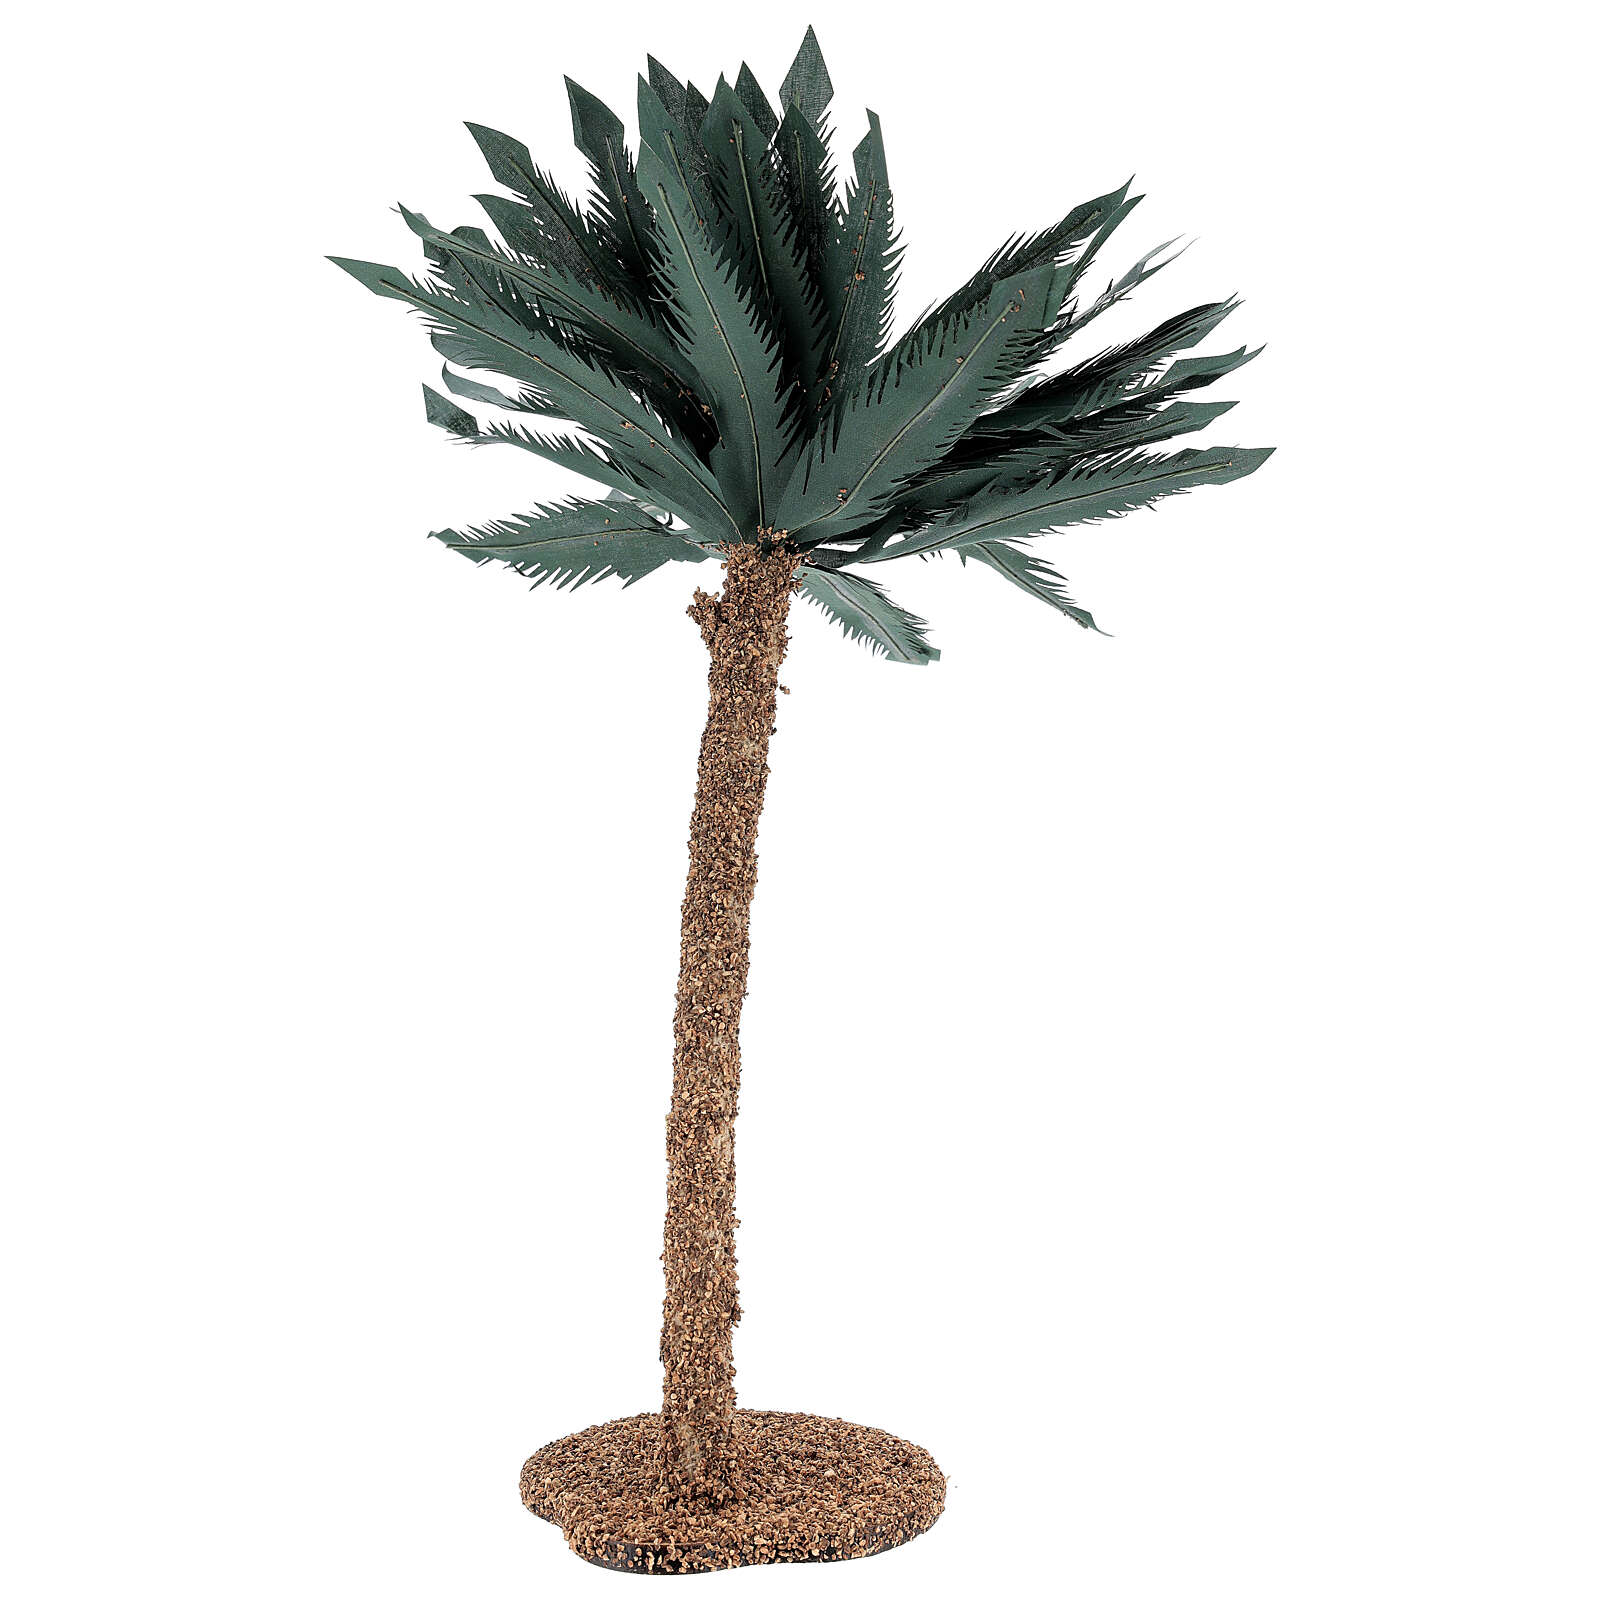 Miniature palm tree 35 cm for Nativity Scene with 12-20 cm figurines 4